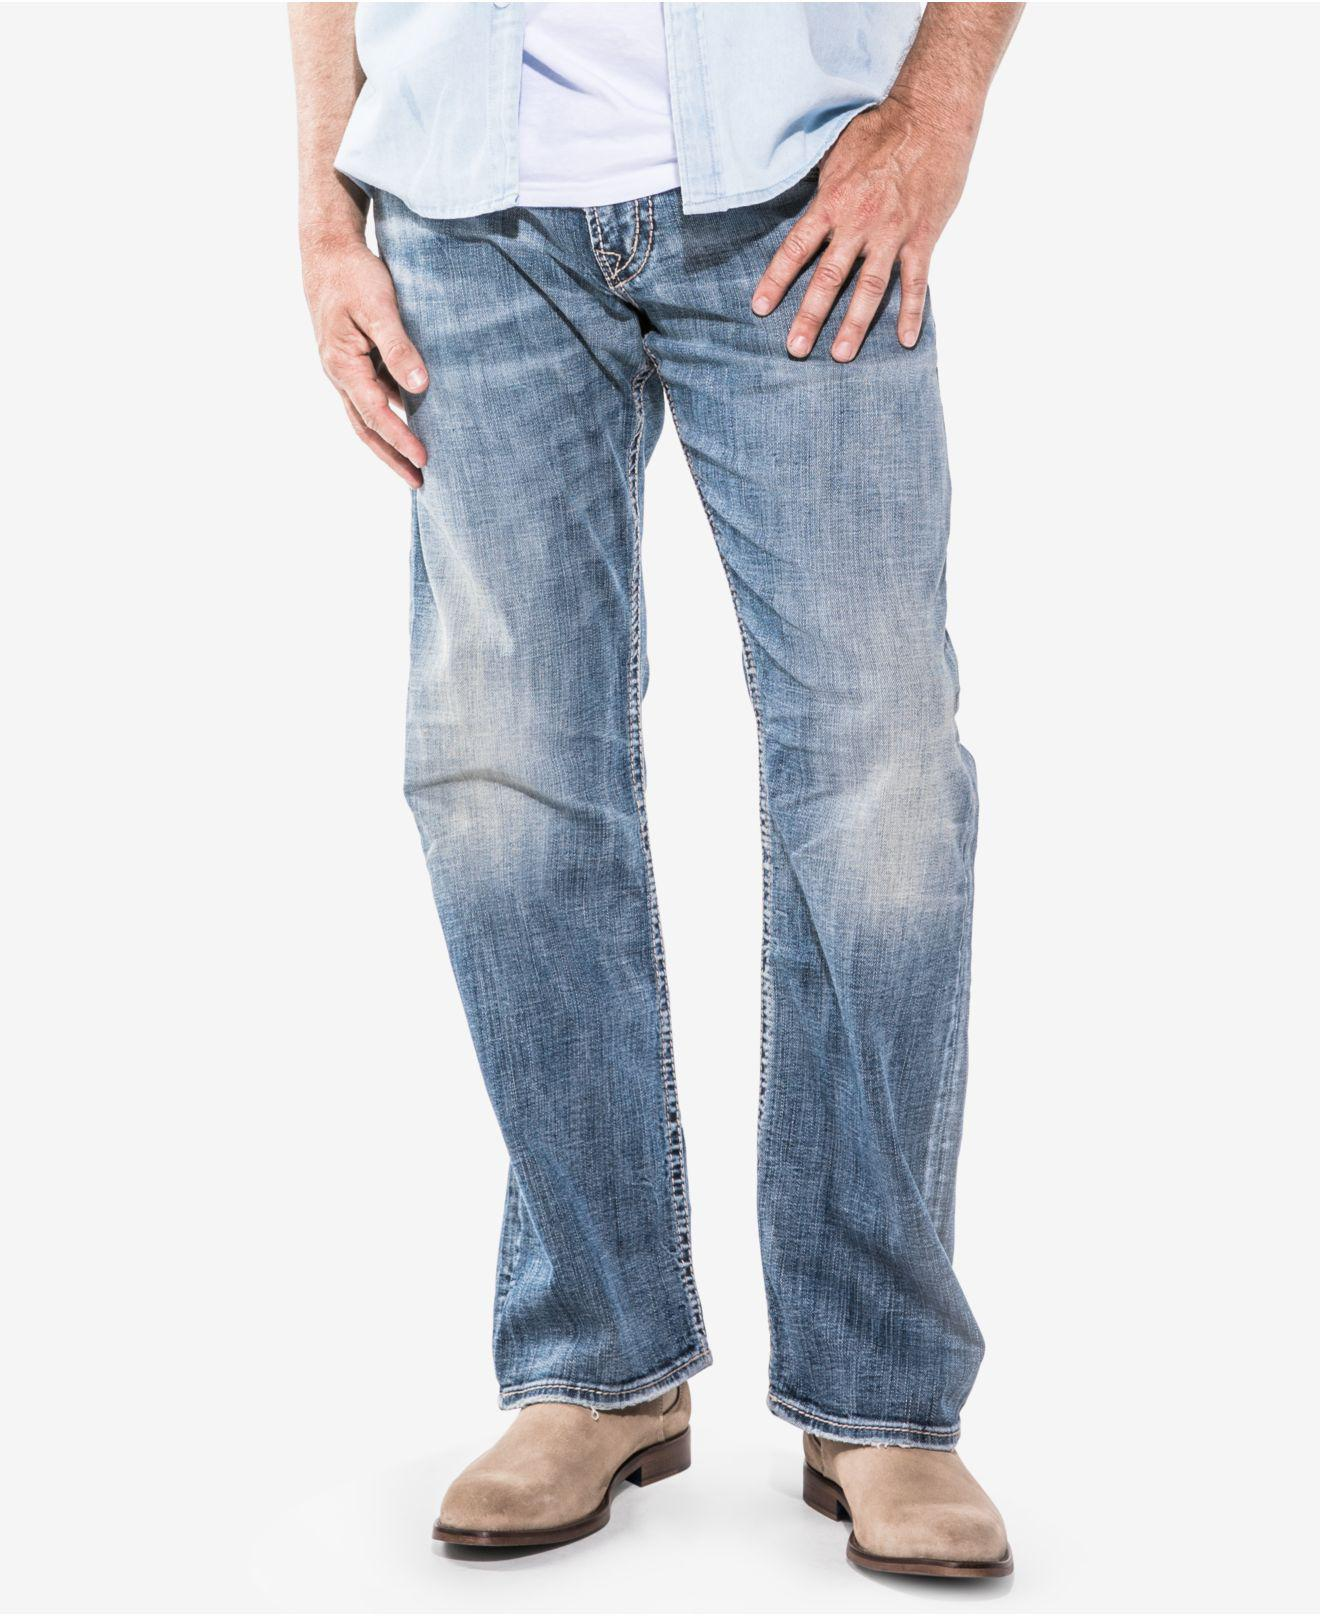 Shop the Latest Collection of Silver Jeans Co. Jeans for Men Online at angrydog.ga FREE SHIPPING AVAILABLE!